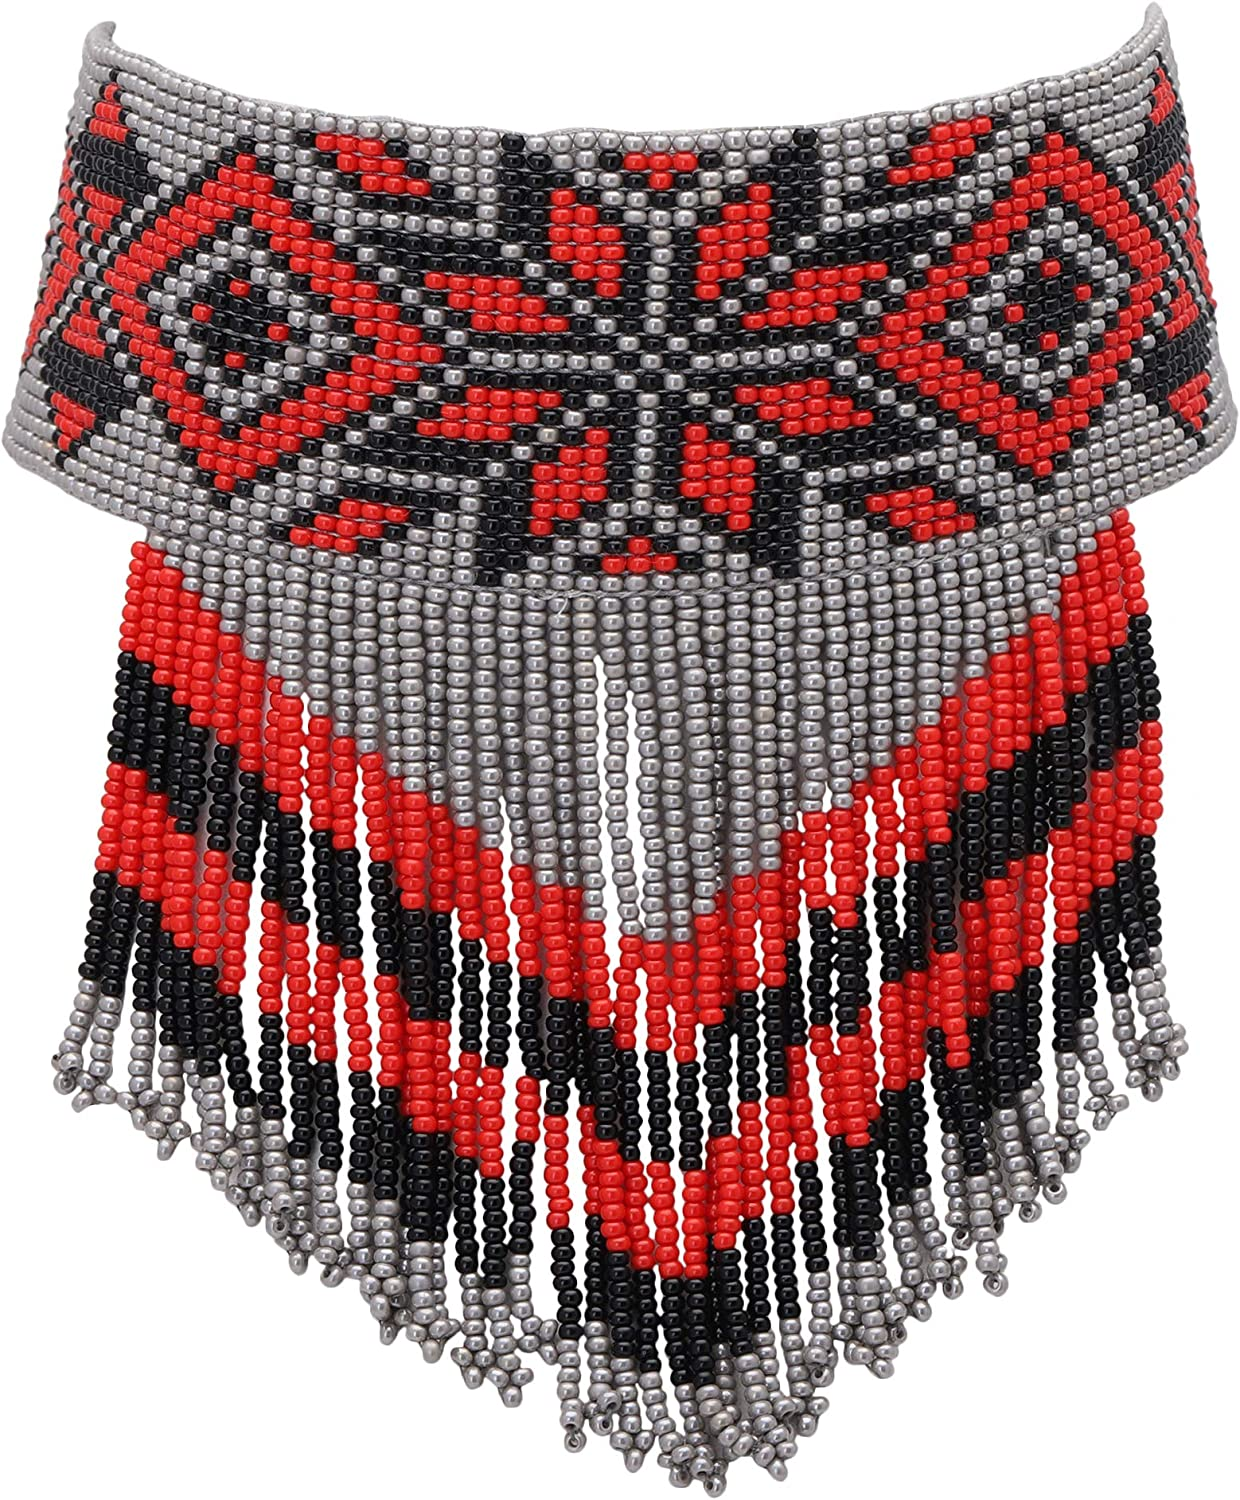 El Allure Preciosa Jablonex Seed Bead American Navajo Seed Beaded Black, Grey and Red Choker with Floral Pattern Handmade Personalized Delicate Costume Fashion Unique Native Necklace for Women.